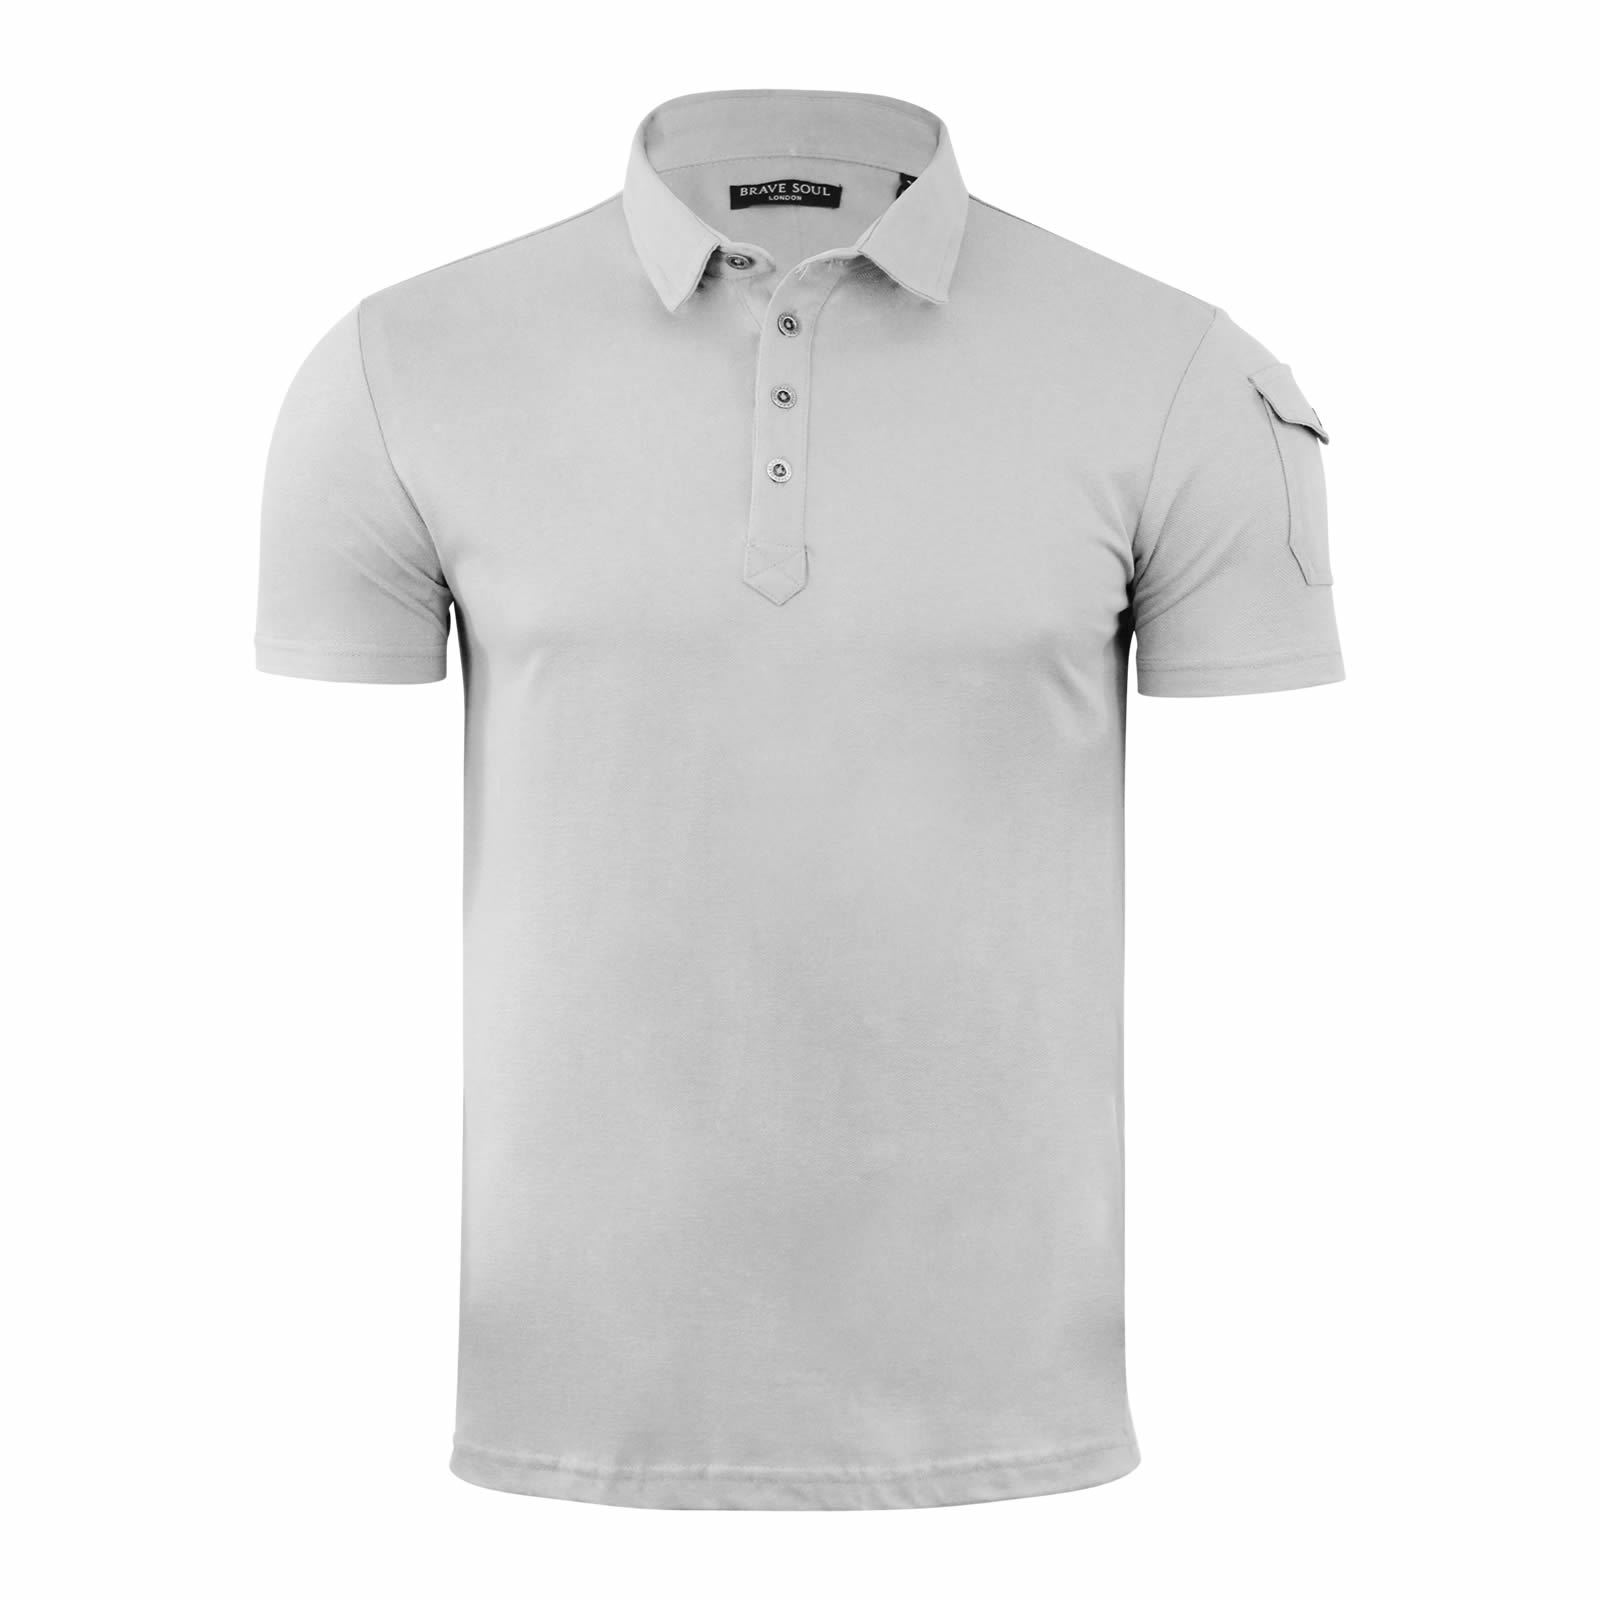 Mens-Polo-T-Shirt-Brave-Soul-Joe-Plain-Short-Sleeve-Collared-Casual-Top